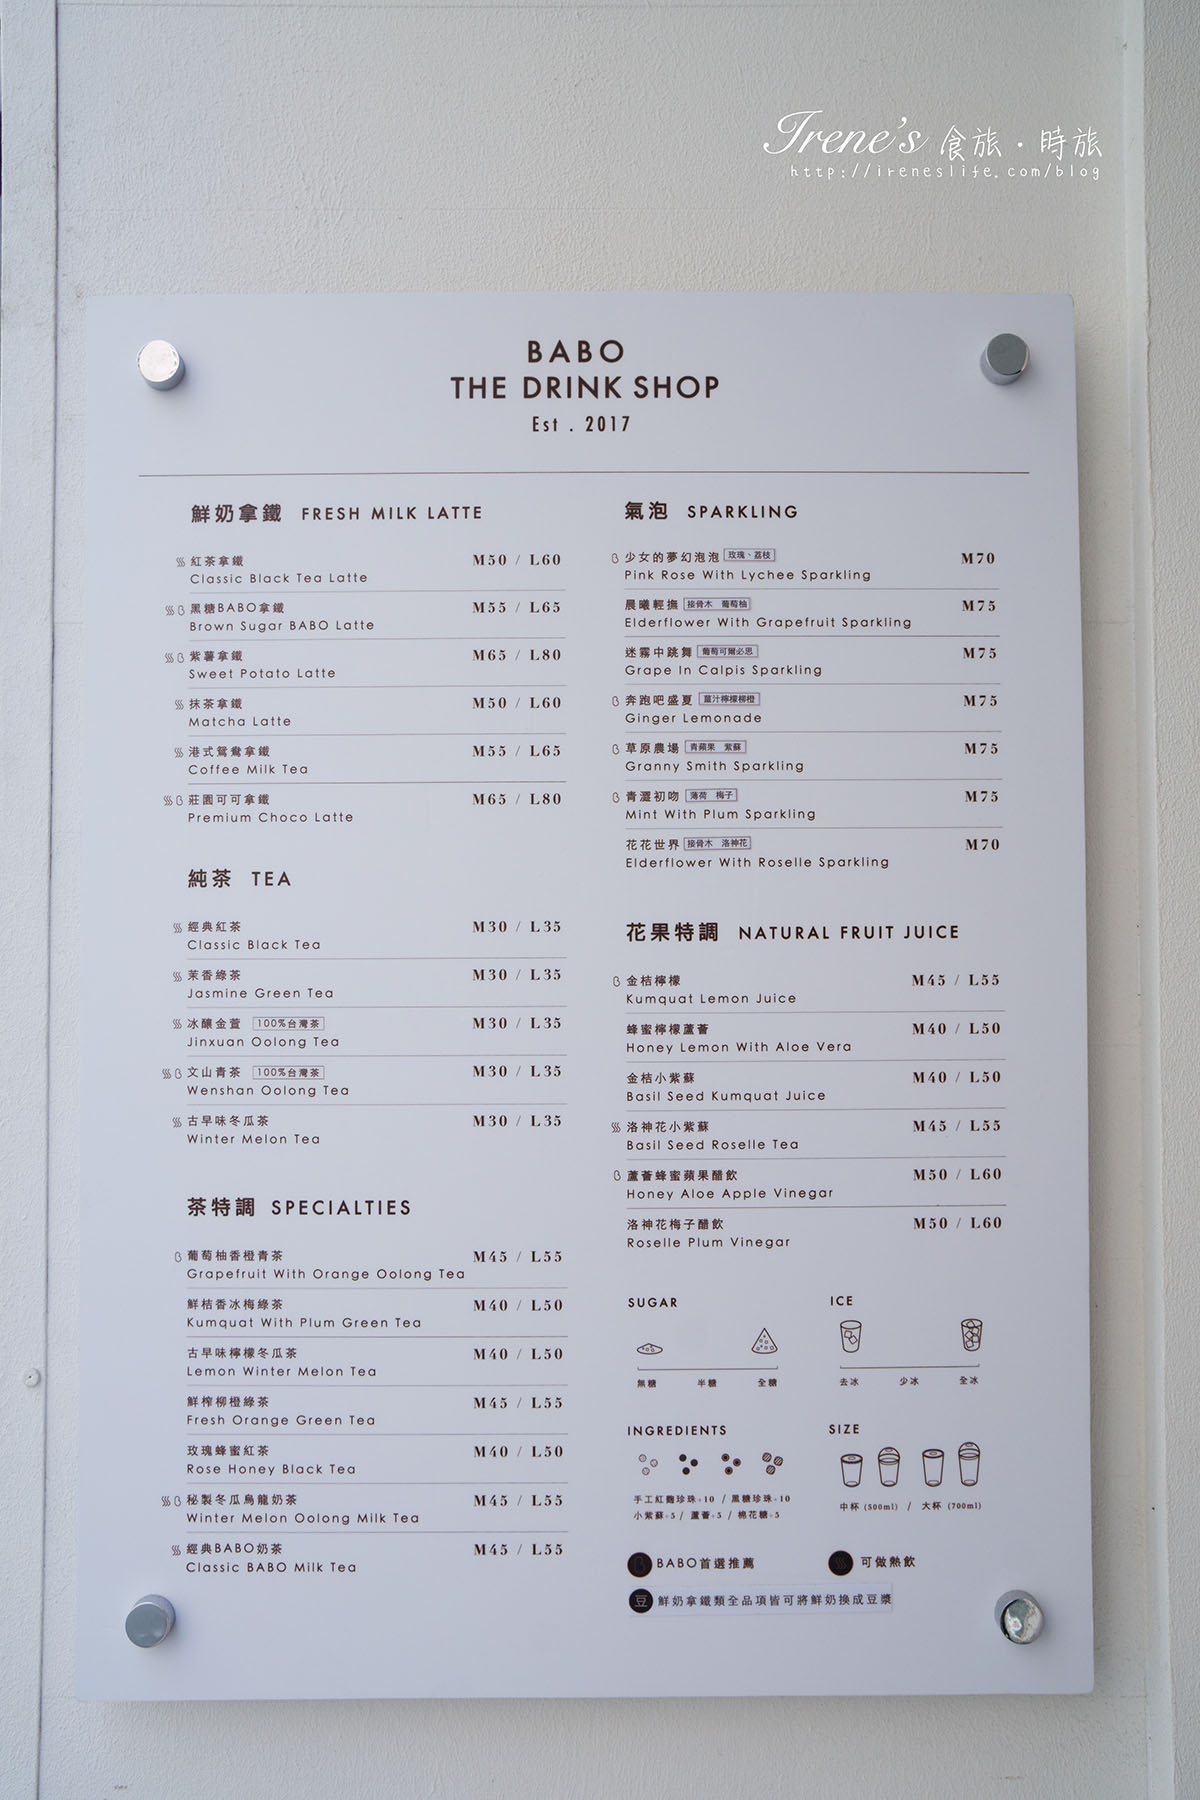 BABO the DRINK SHOP